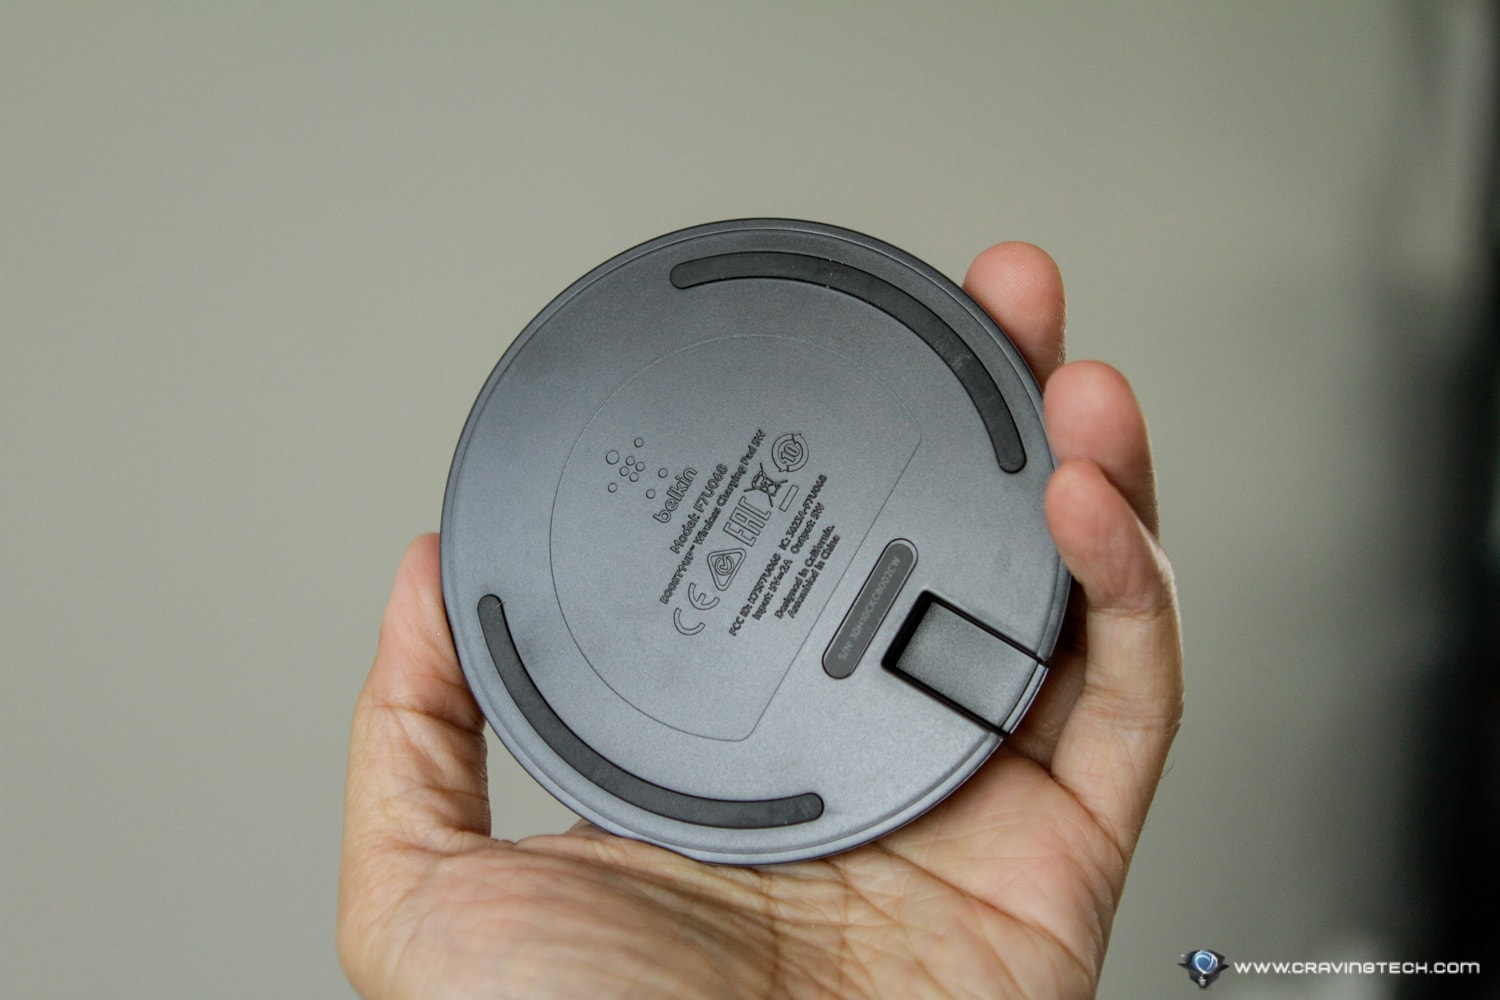 Belkin BoostUp 5W Wireless Charging Pad Review